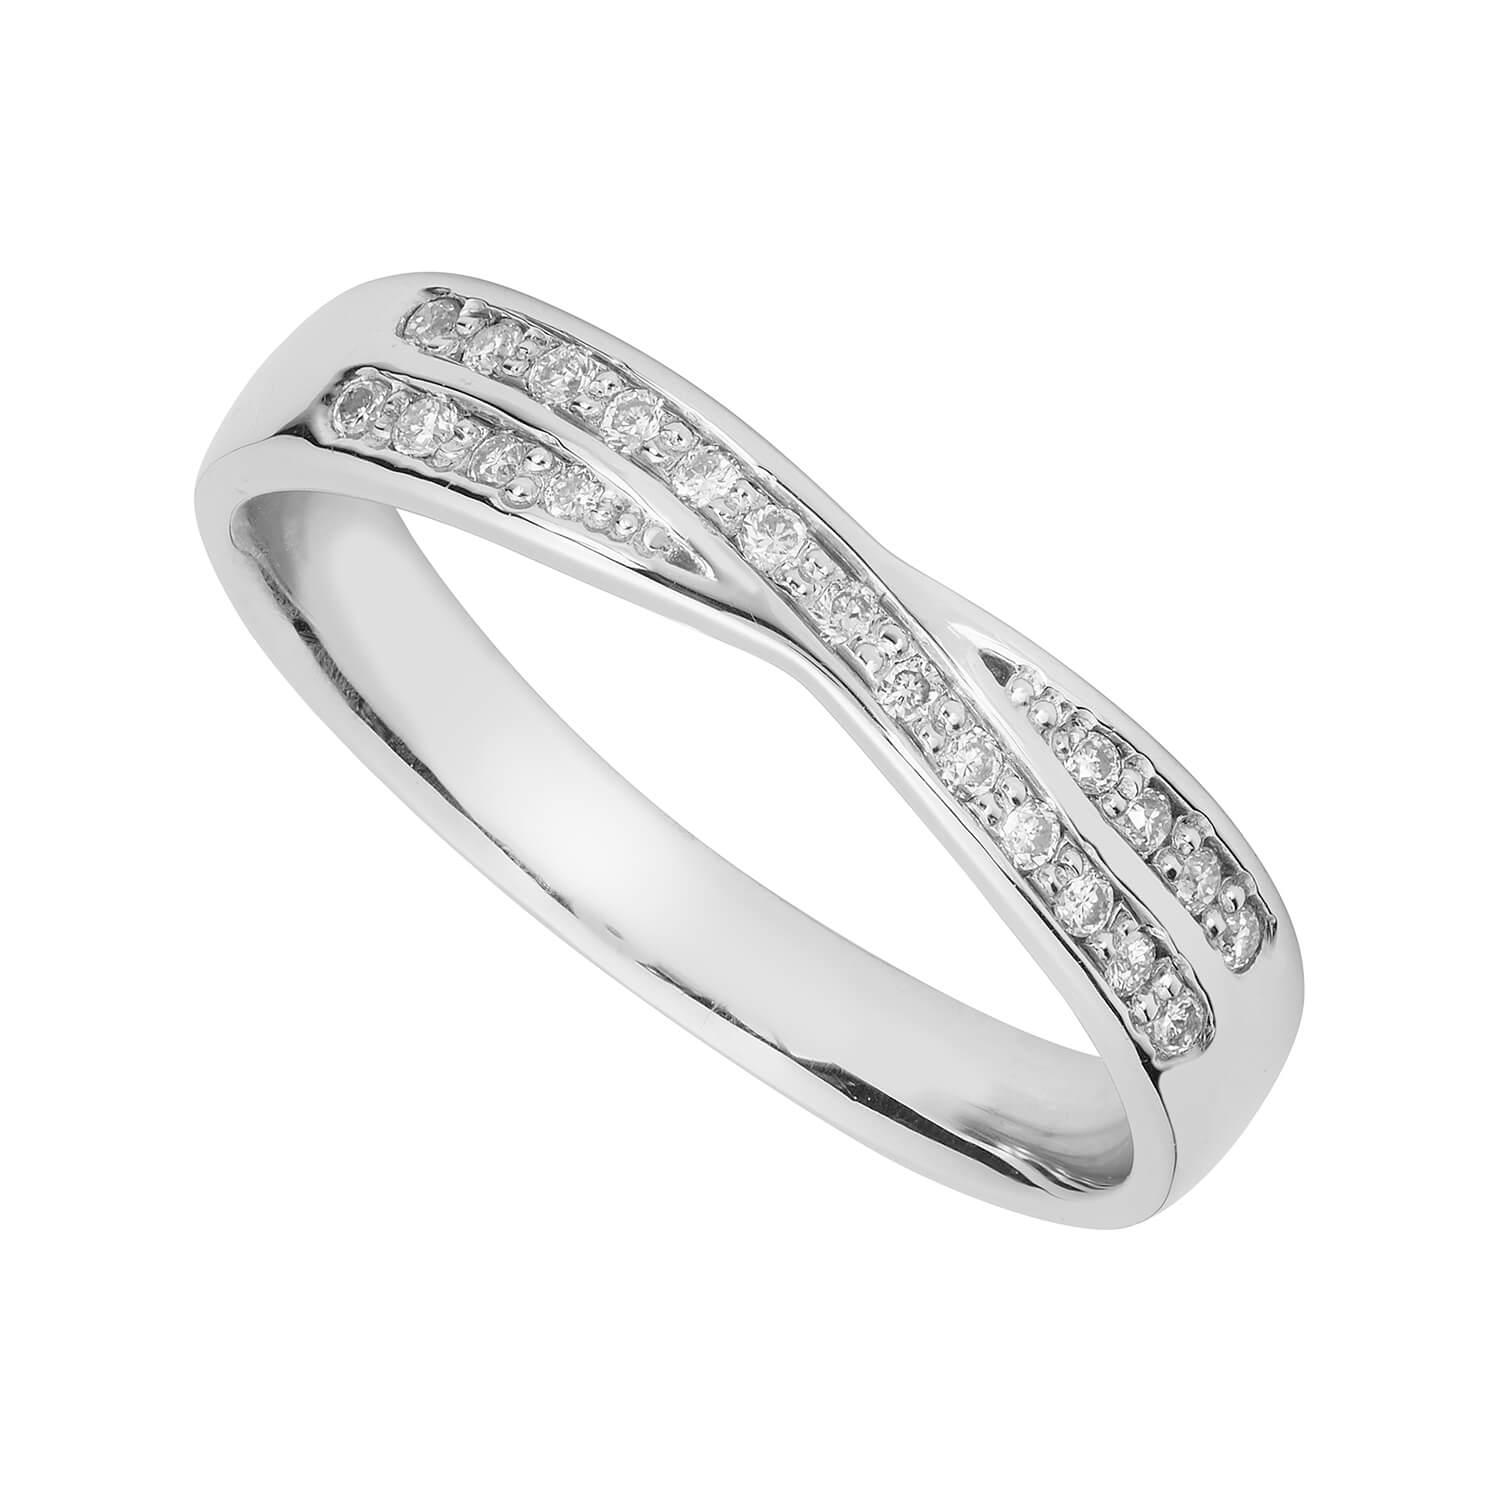 Ladies' 9ct white gold crossover wedding ring